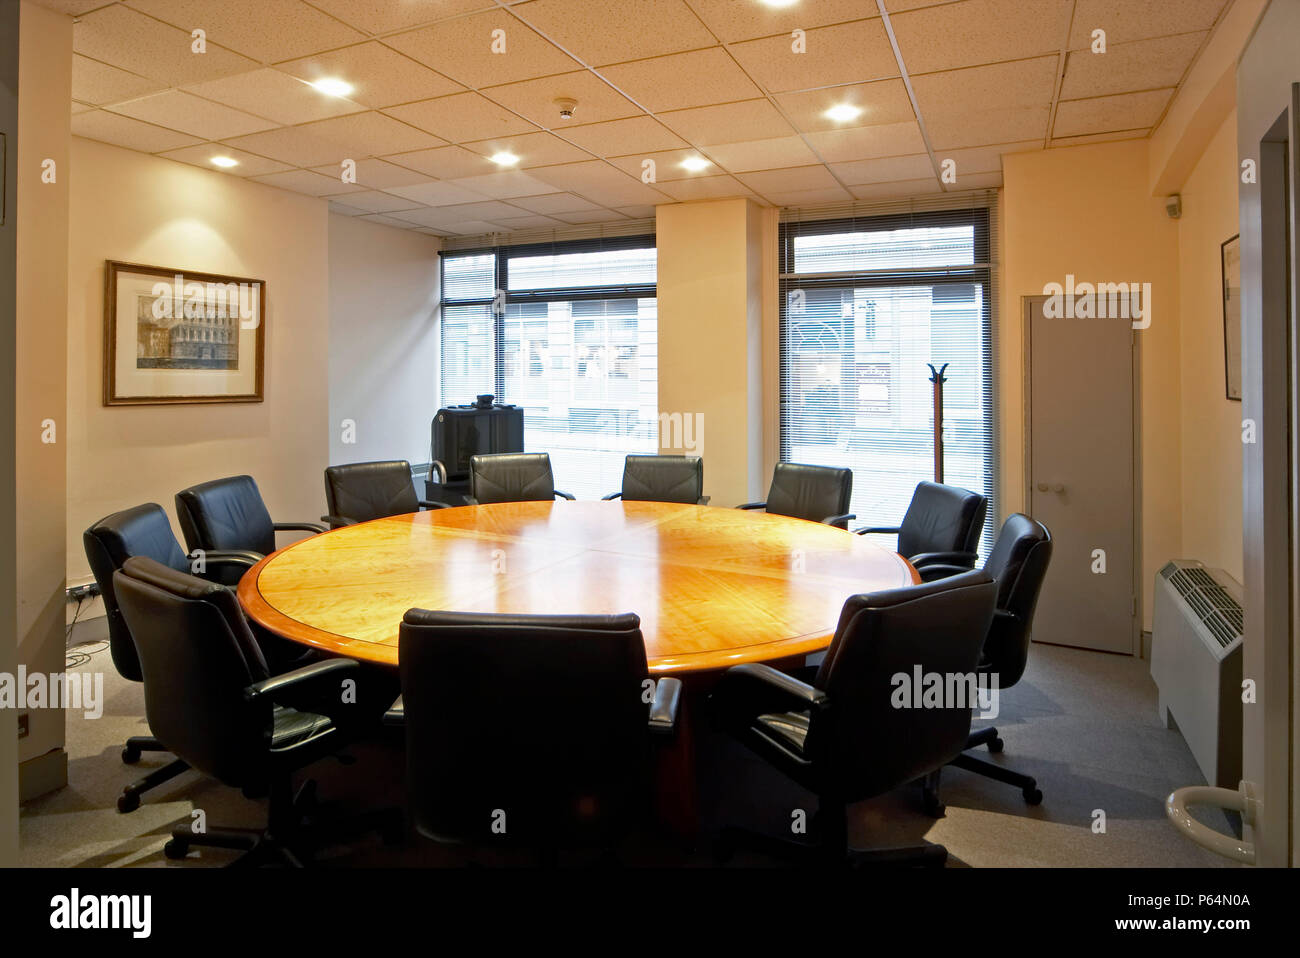 Office meeting room with round table Stock Photo - Alamy